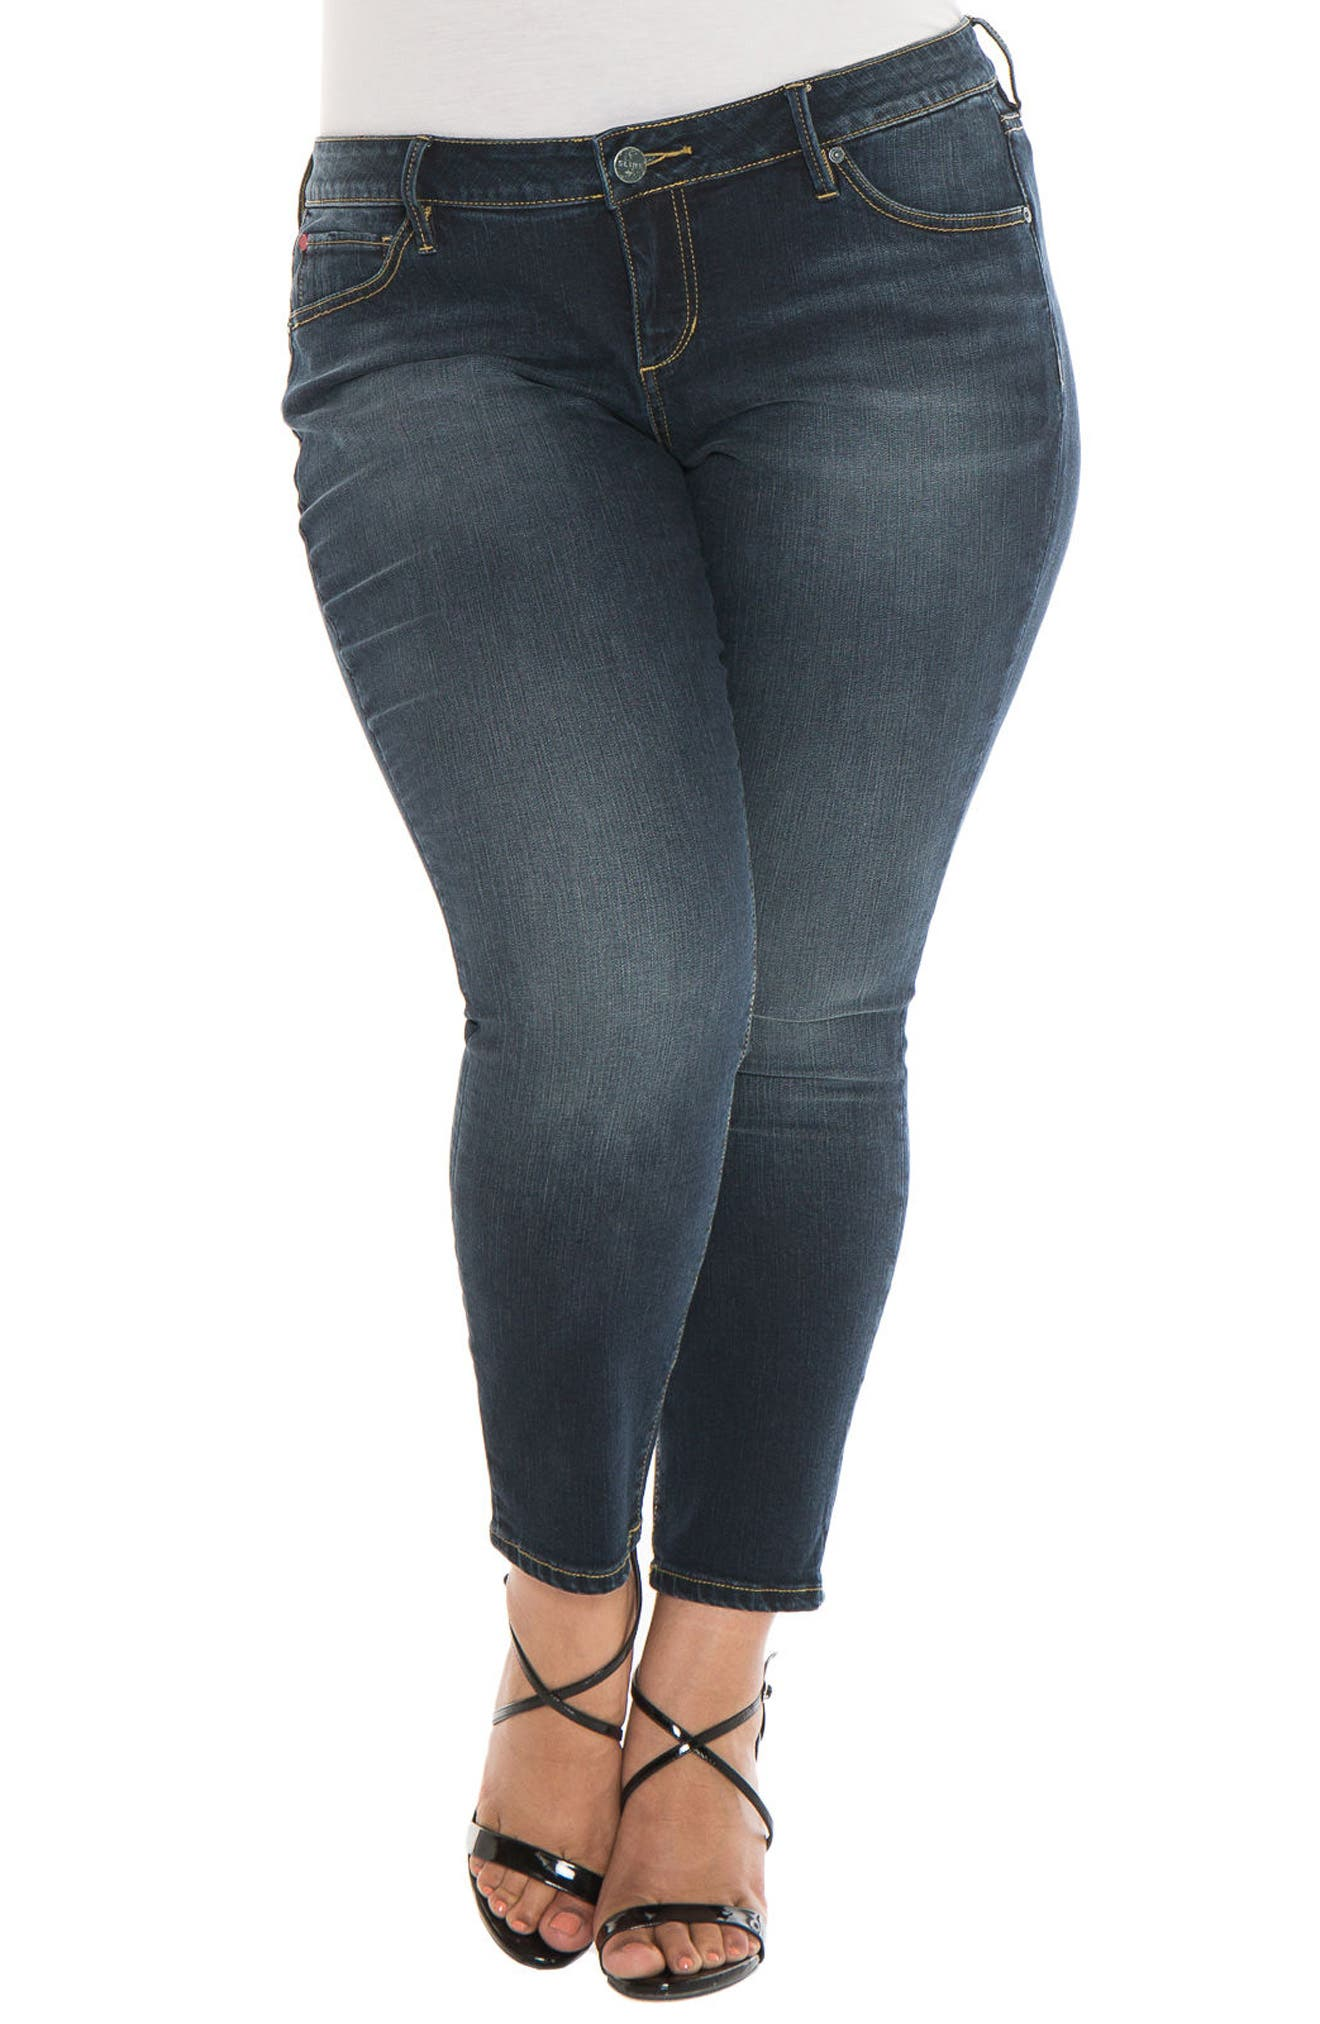 Main Image - SLINK Jeans Skinny Ankle Jeans (Sal) (Plus Size)